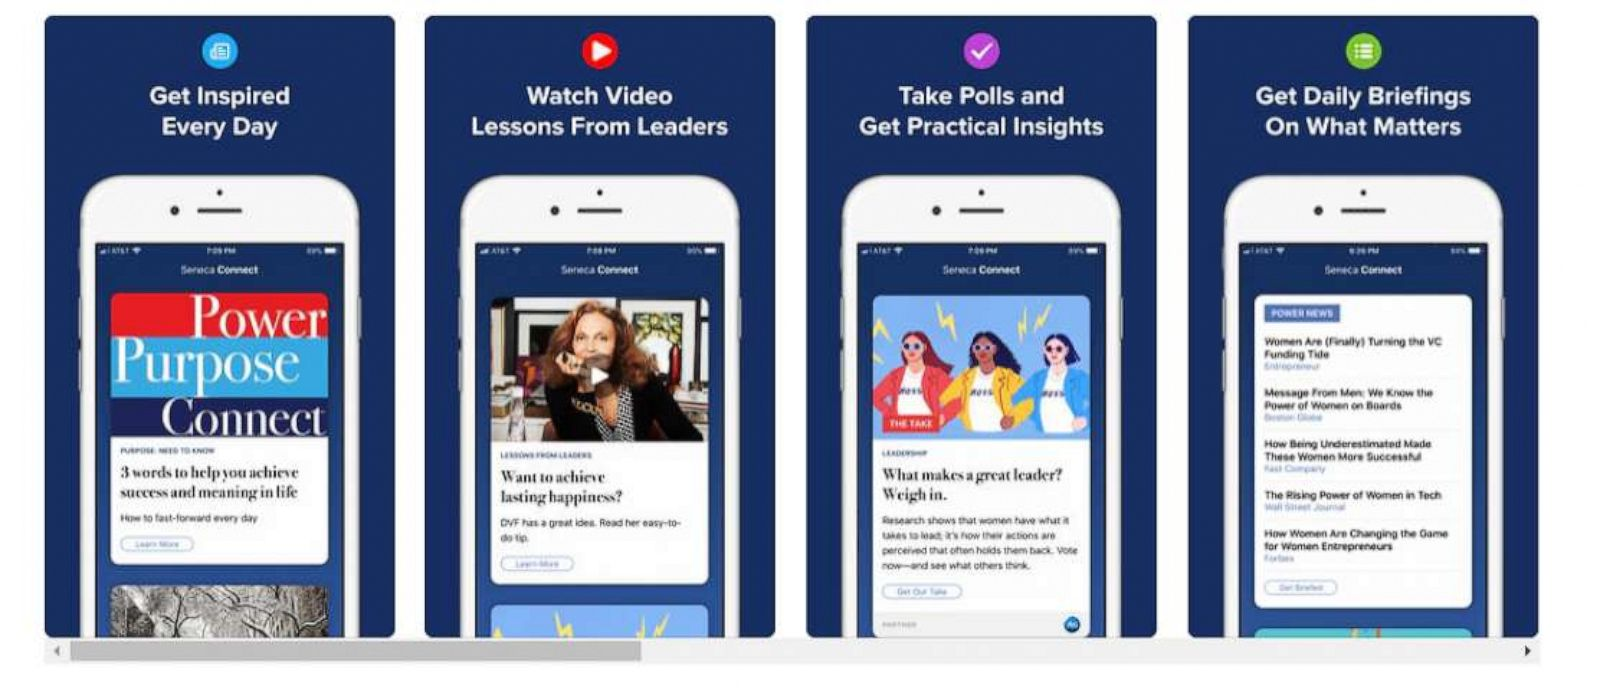 These apps aim to make networking easier for women - ABC News